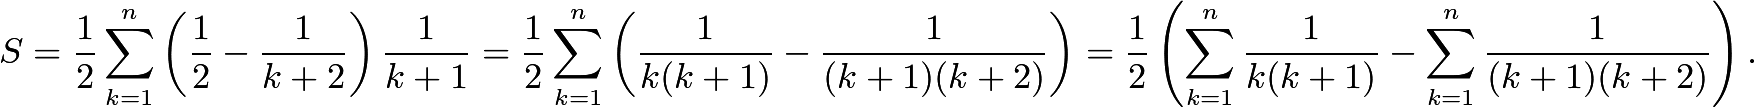 \[S = \dfrac{1}{2}\sum_{k=1}^n \left(\dfrac{1}{2}-\dfrac{1}{k+2}\right)\dfrac{1}{k+1} = \dfrac{1}{2}\sum_{k = 1}^n \left(\dfrac{1}{k(k+1)} - \dfrac{1}{(k+1)(k+2)}\right) = \dfrac{1}{2}\left(\sum_{k = 1}^n \dfrac{1}{k(k+1)}- \sum_{k = 1}^n \dfrac{1}{(k+1)(k+2)} \right).\]